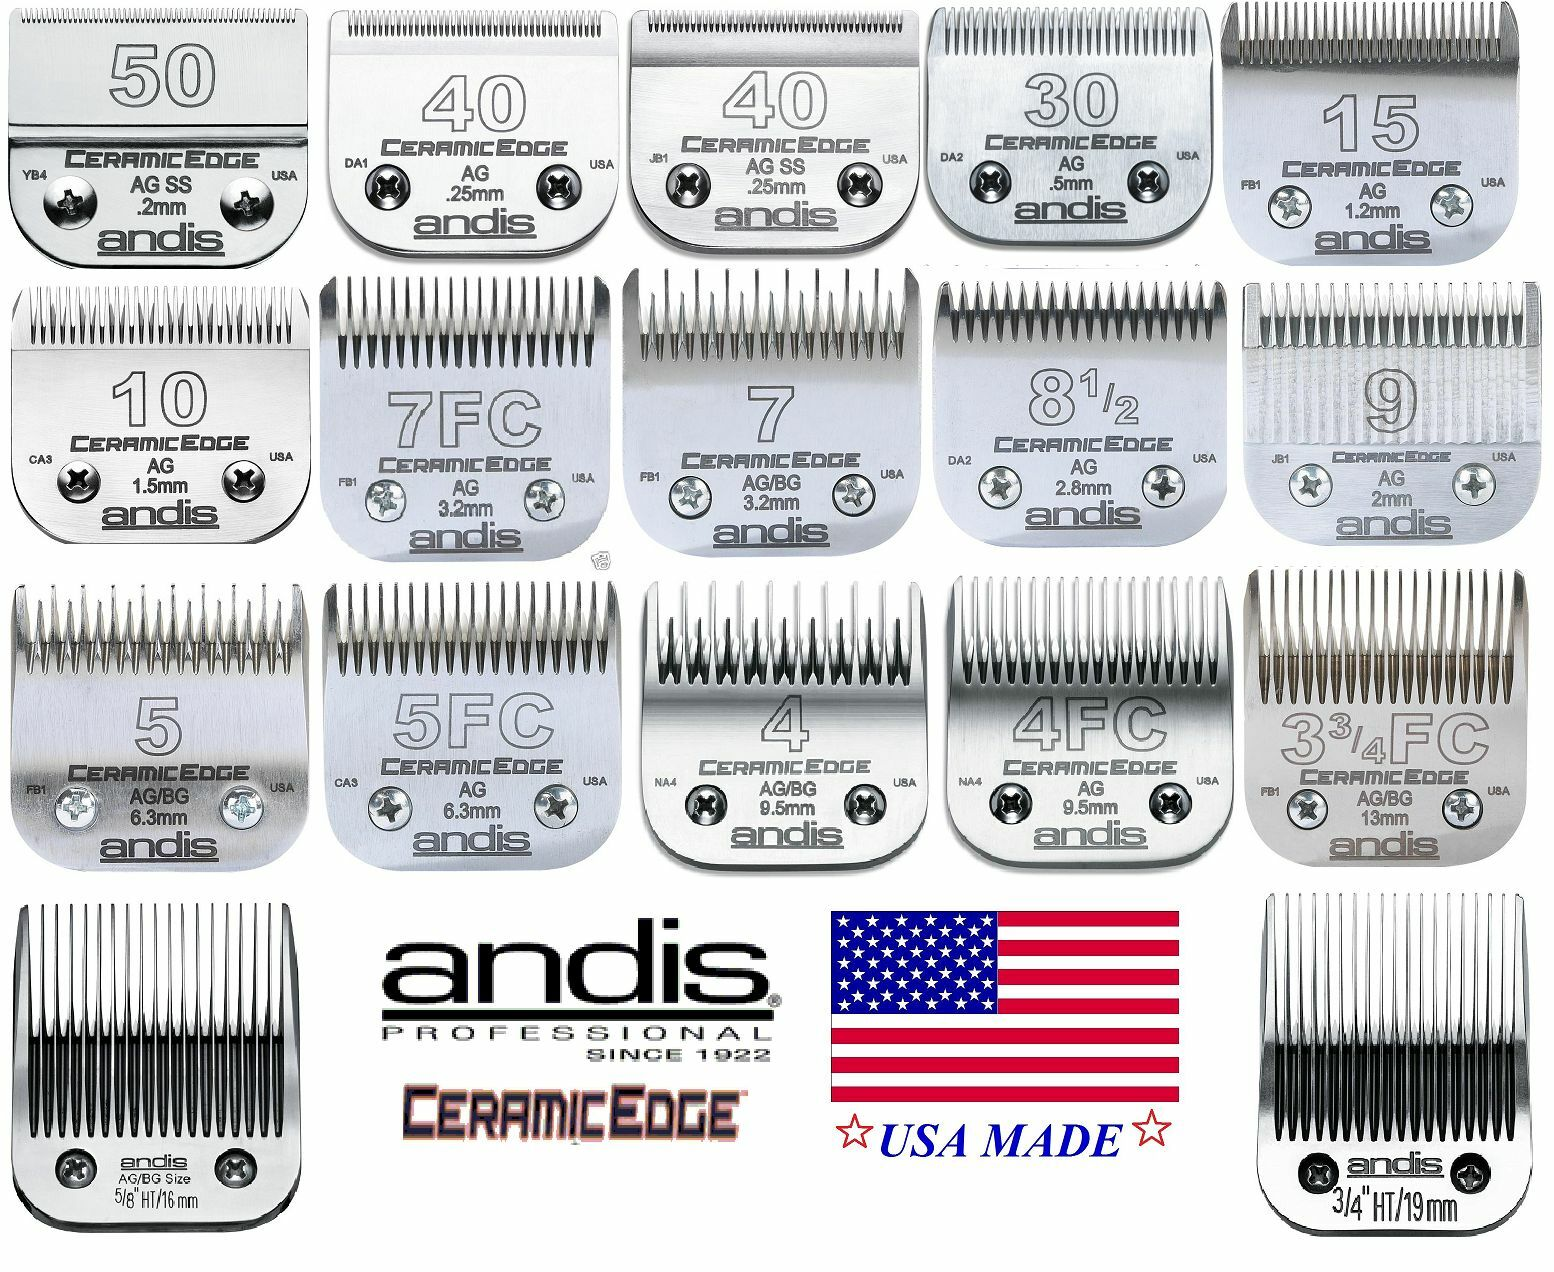 ANDIS CeramicEdge Steel&CERAMIC BLADE*Fit AG,BG,AGC Oster A5 A6,Wahl KM Clippers